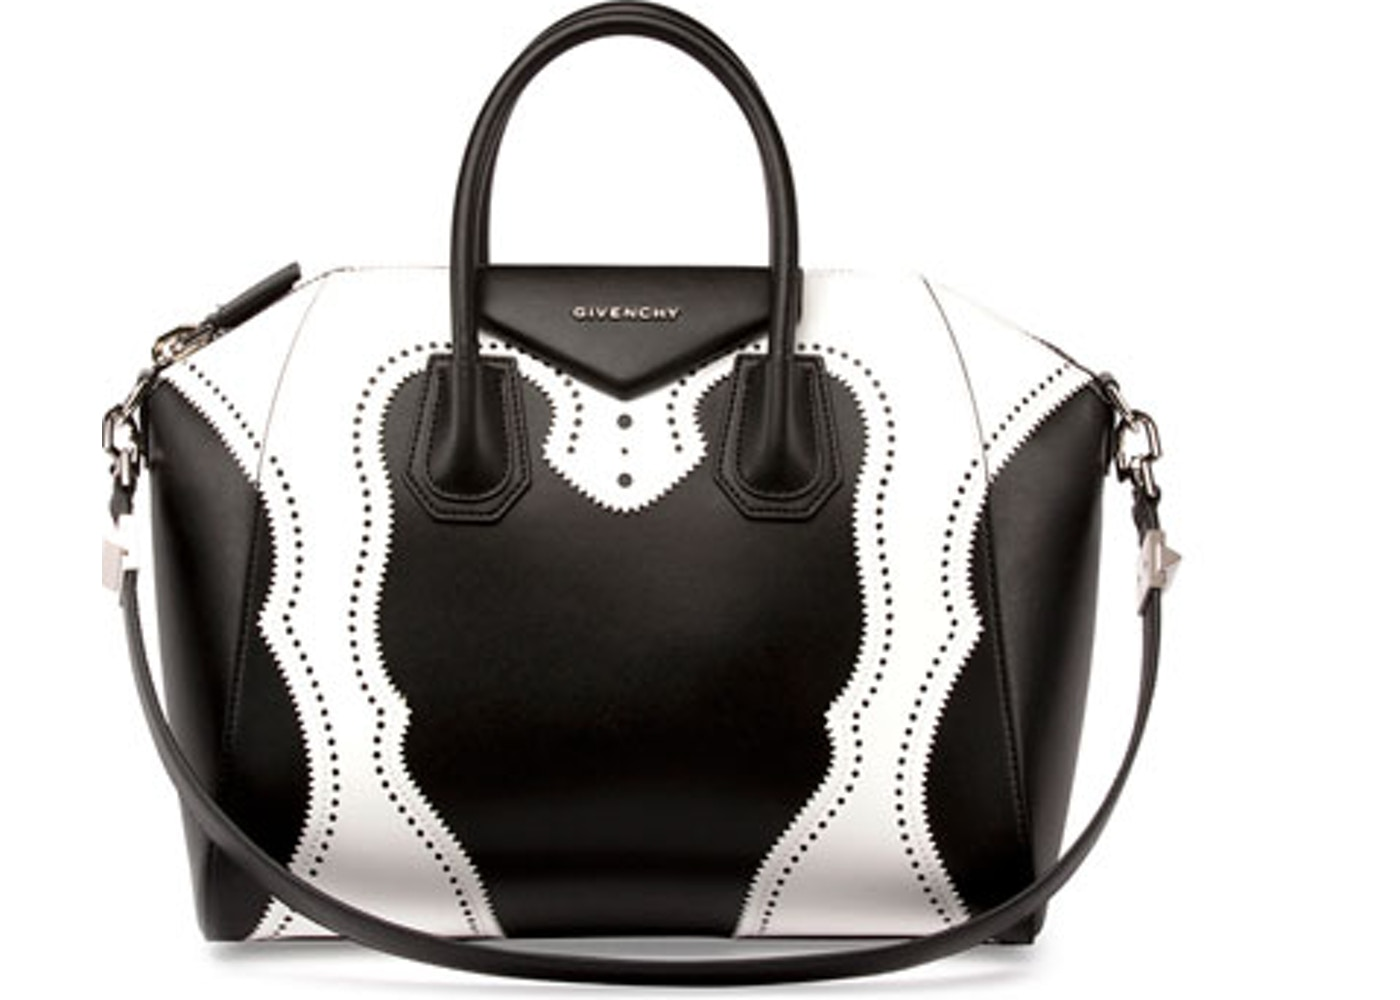 Givenchy Antigona Tote Medium Black White. Medium Black White 6b6fd09c8b398